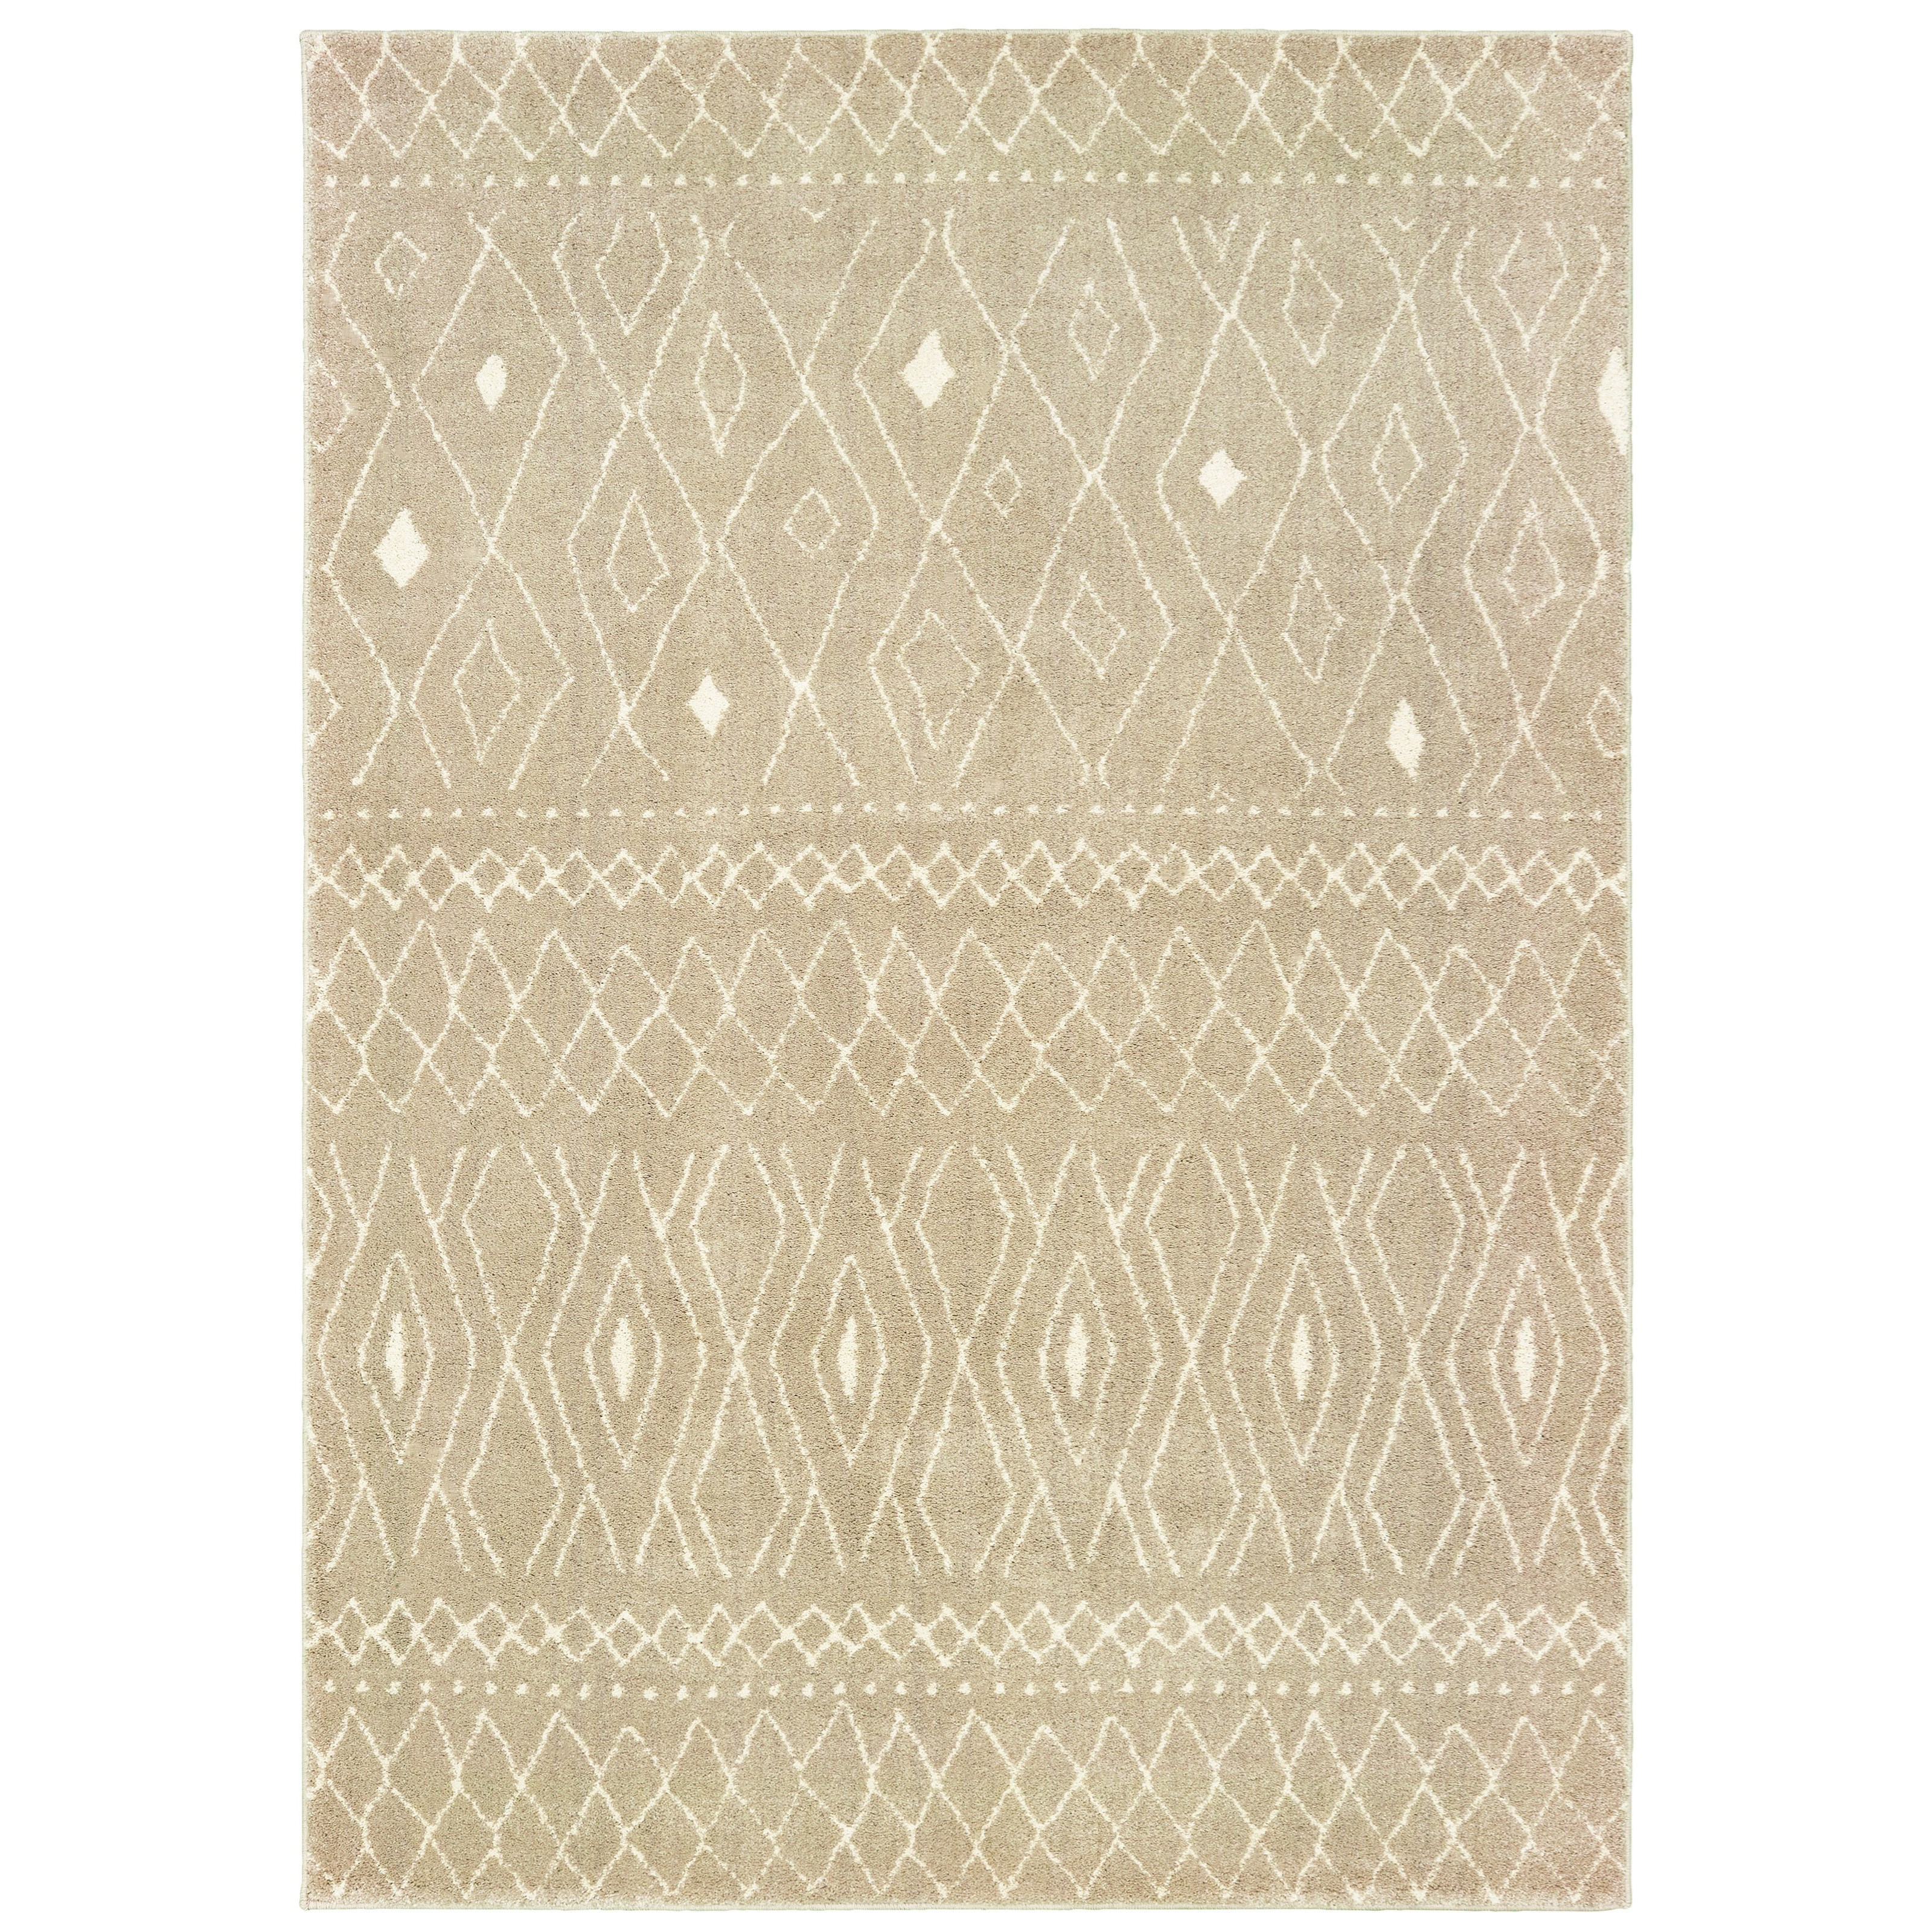 "Carson OW 5' 3"" X  7' 3"" Rectangle Rug by Oriental Weavers at Novello Home Furnishings"